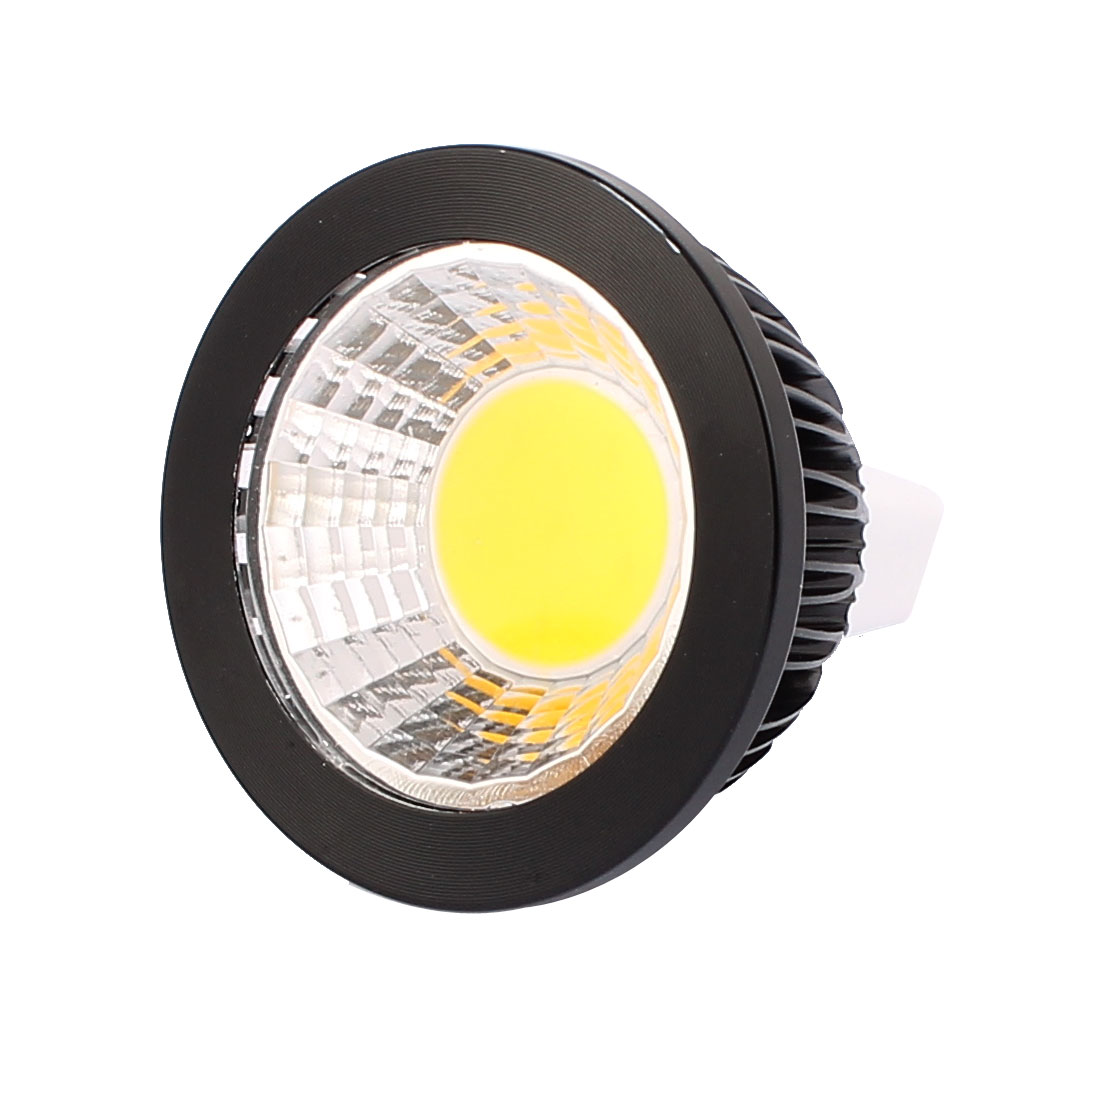 DC12V 3W MR16 COB LED Spotlight Lamp Bulb Energy Saving Downlight Pure White